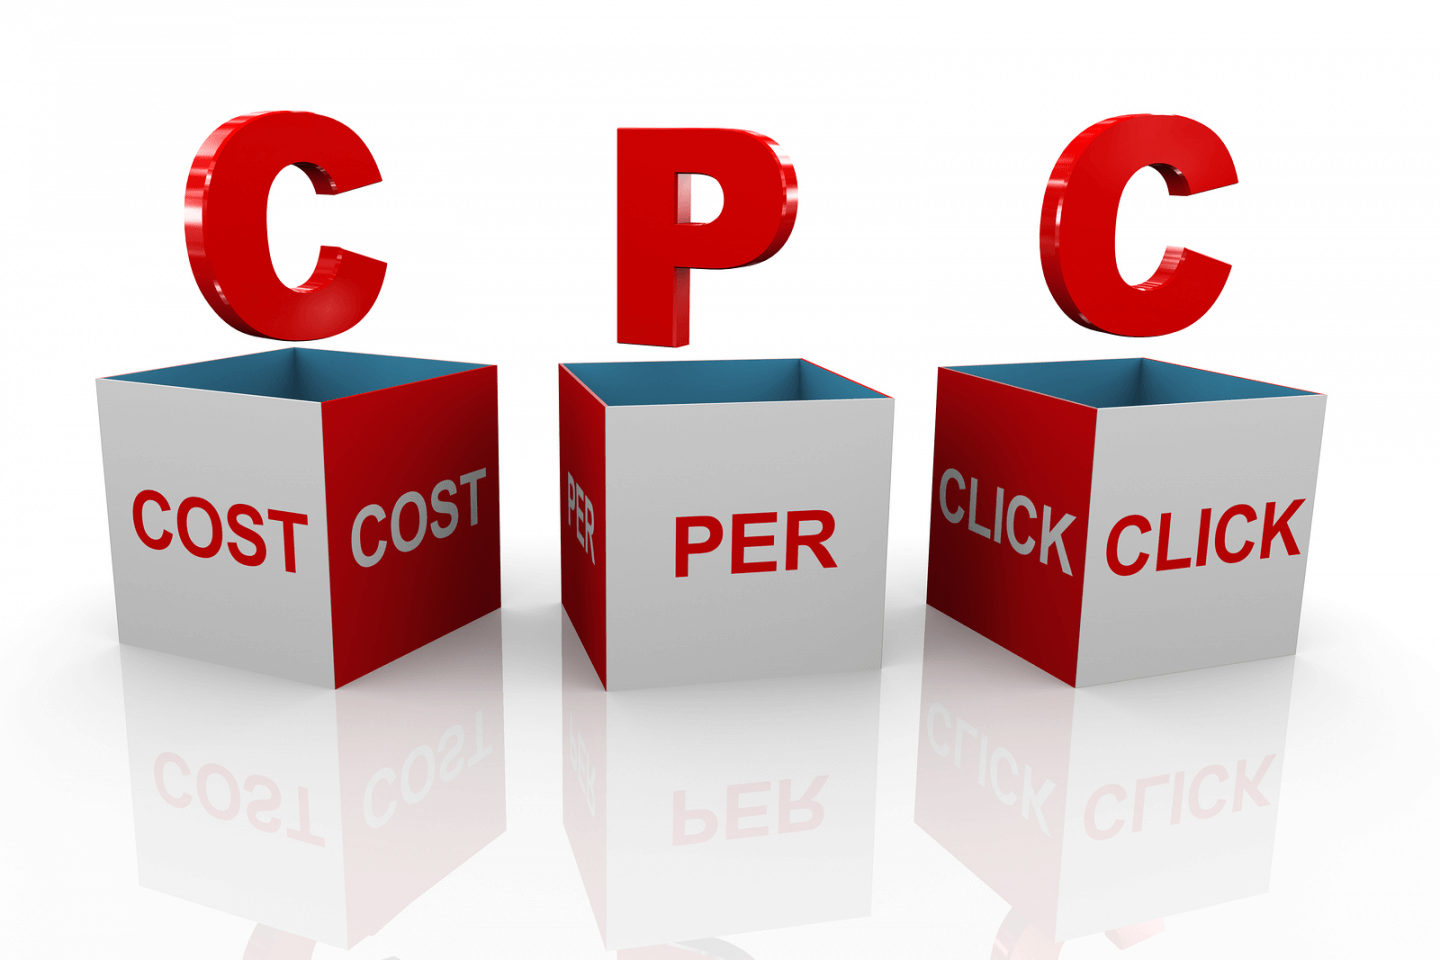 CPC-Cost-Will-Rise-Further